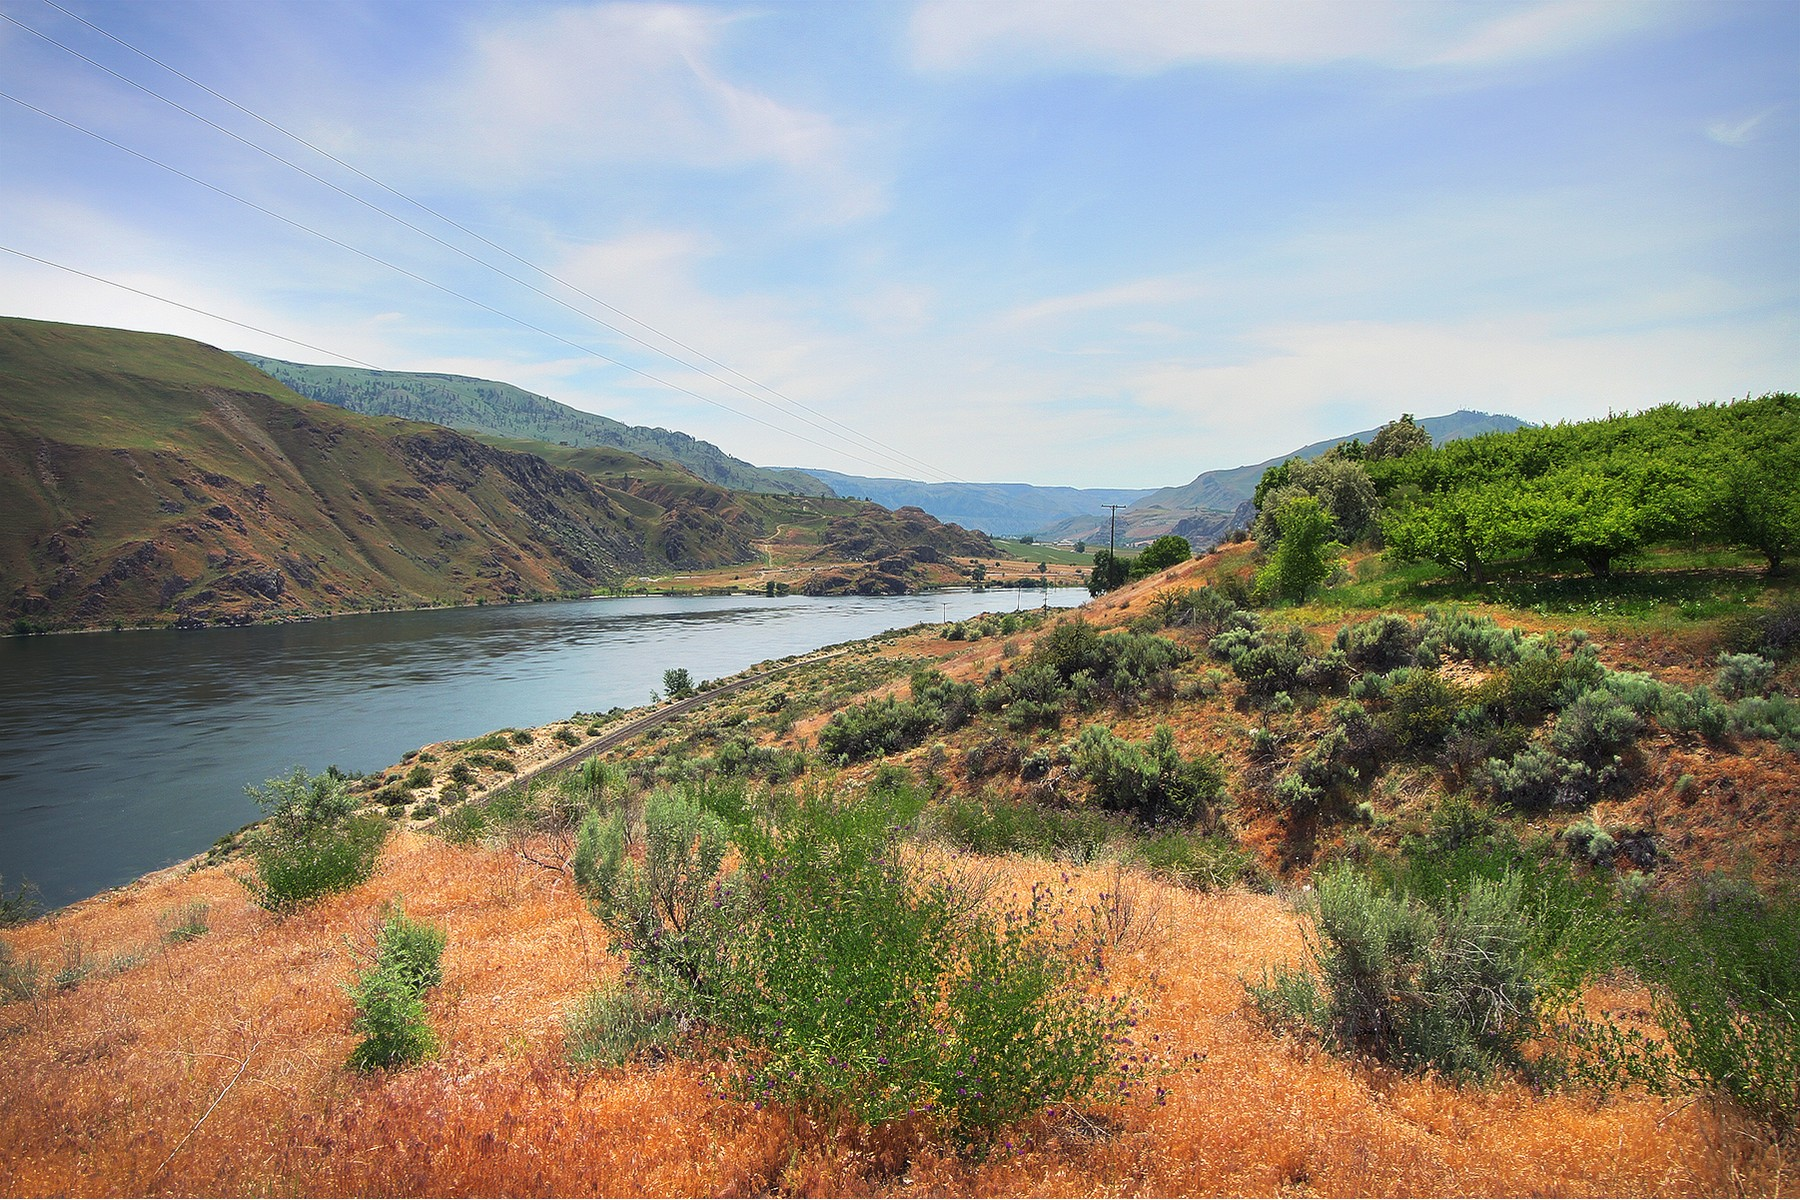 Additional photo for property listing at Chelan 355 Hwy 97 Hwy #365 Chelan, Вашингтон 98816 Соединенные Штаты